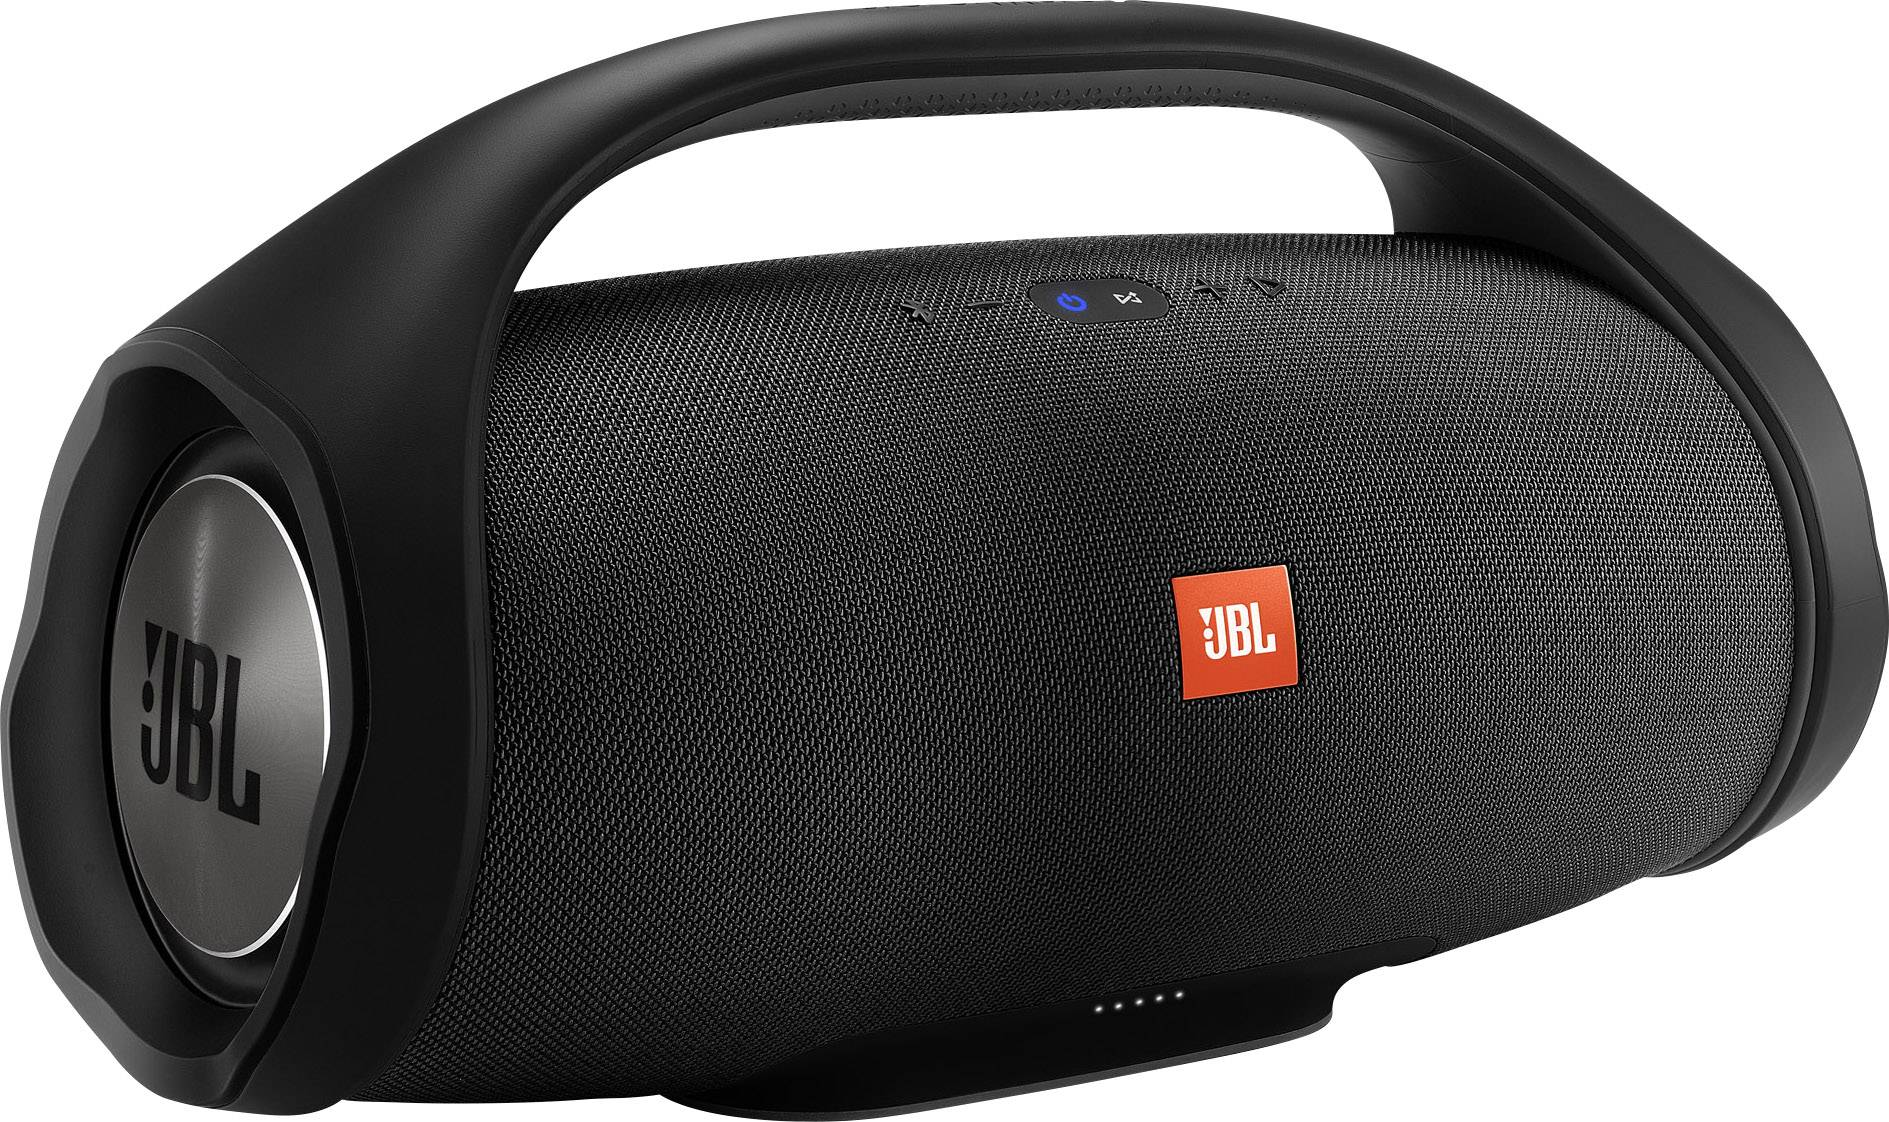 Jbl Bass Jbl Boombox Bluetooth Speaker Outdoor Water Proof Black